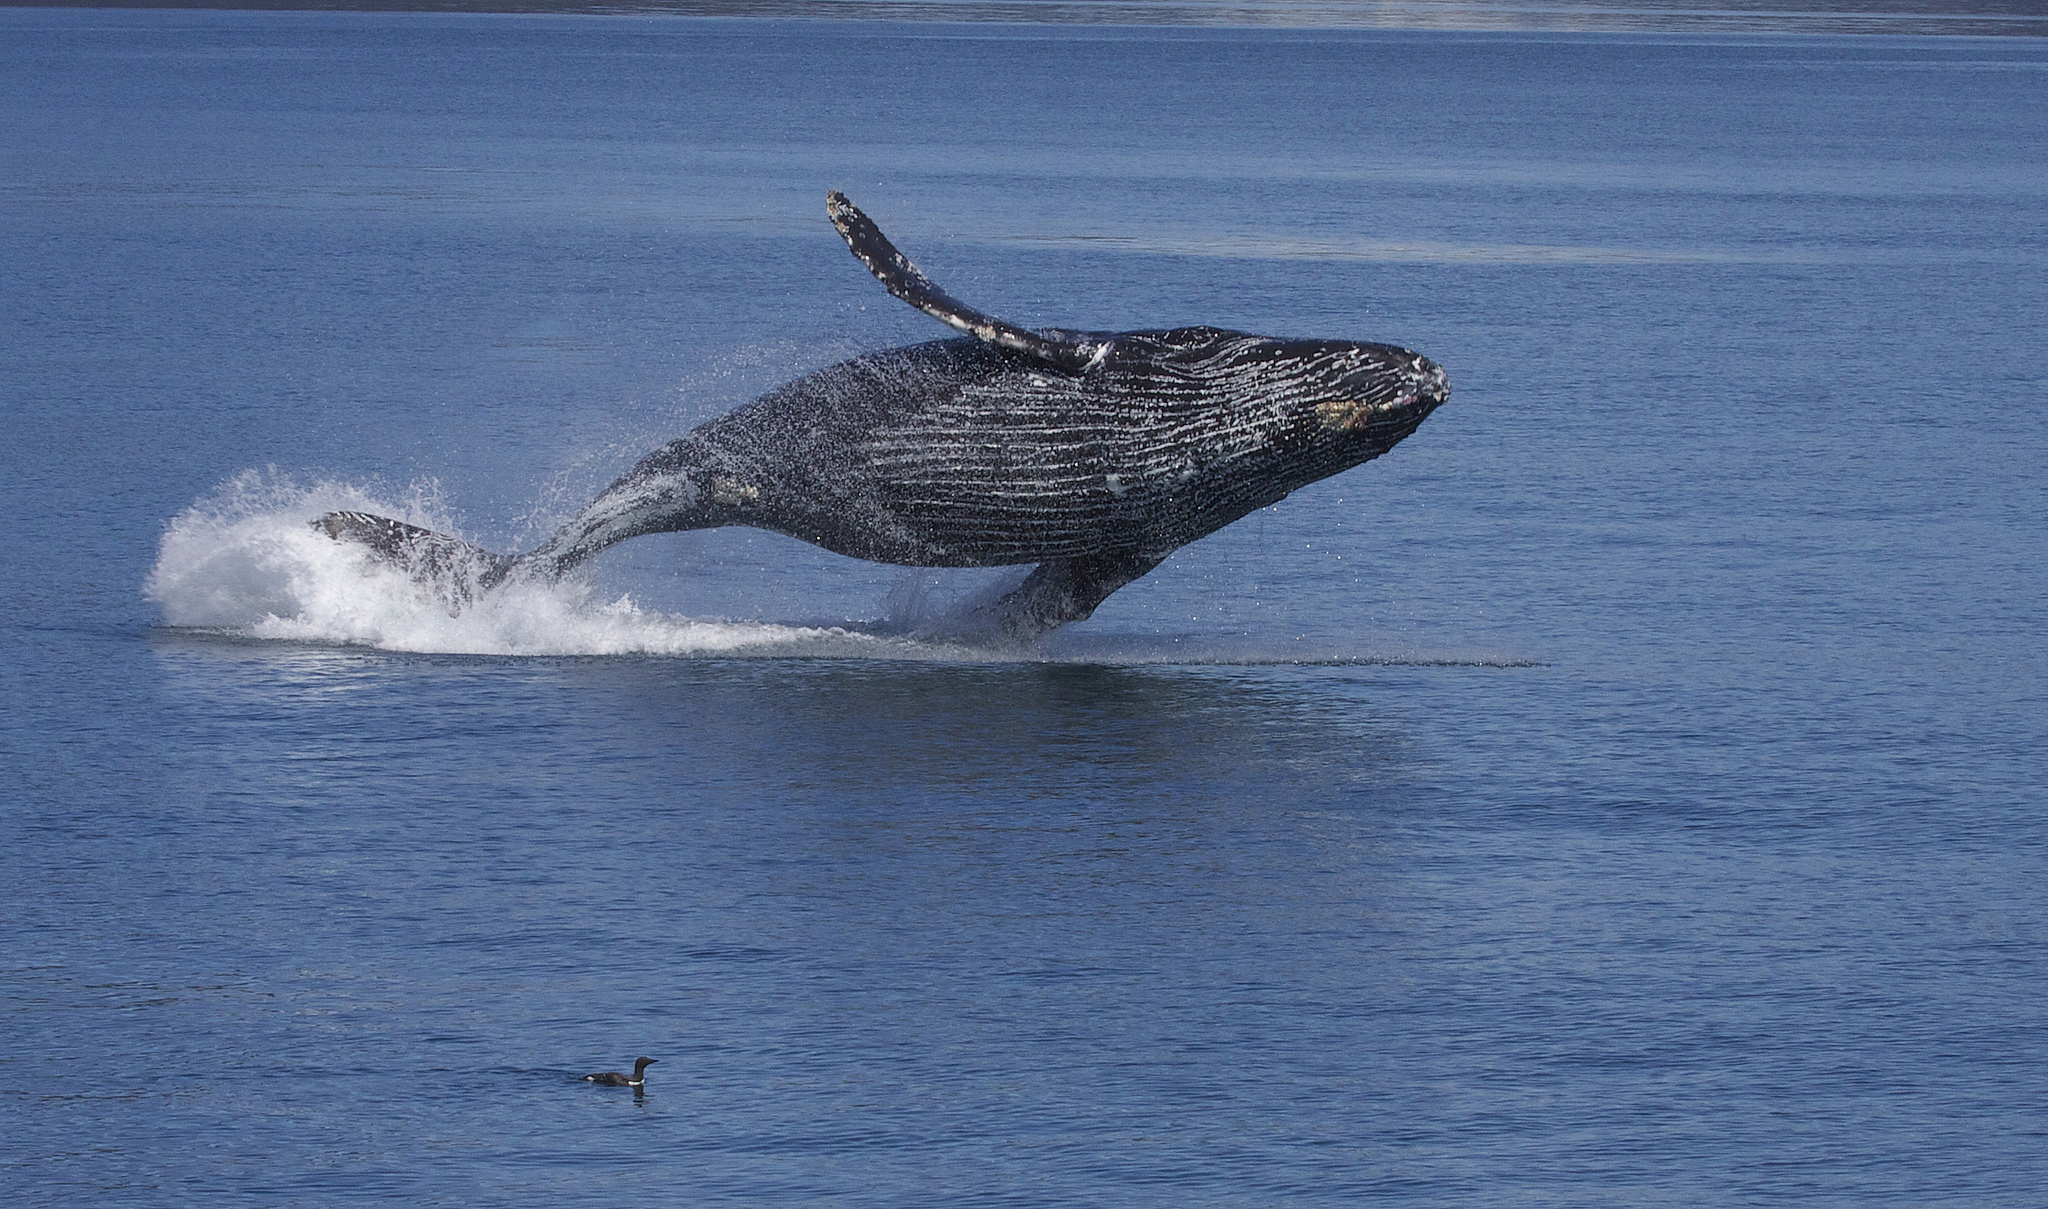 US issues warning against boating as dozens of whales frolic in San Francisco waters